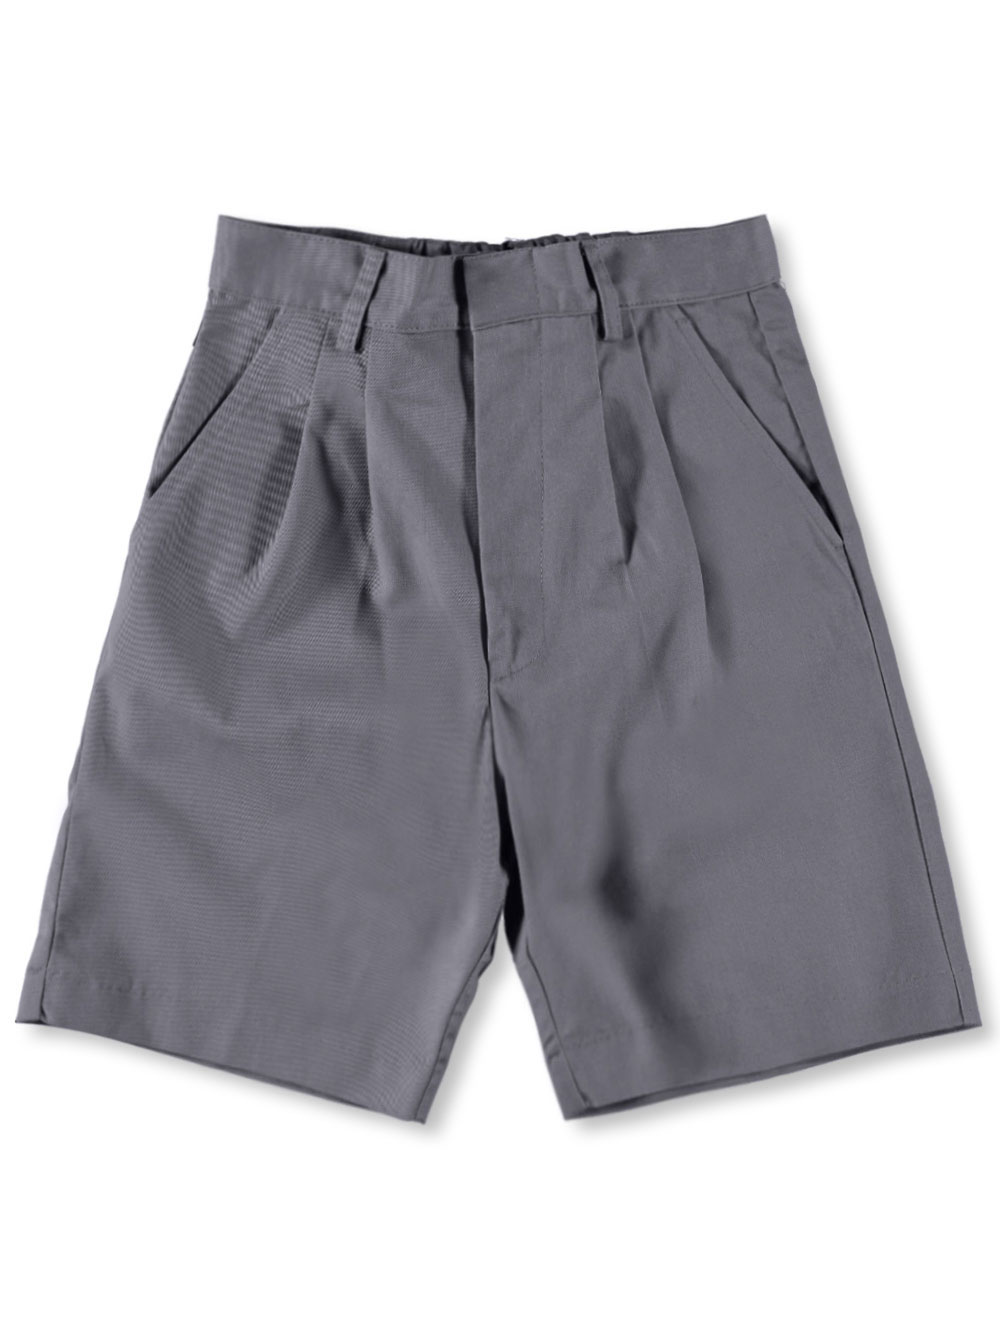 Gray Shorts Gray Shorts and Skorts